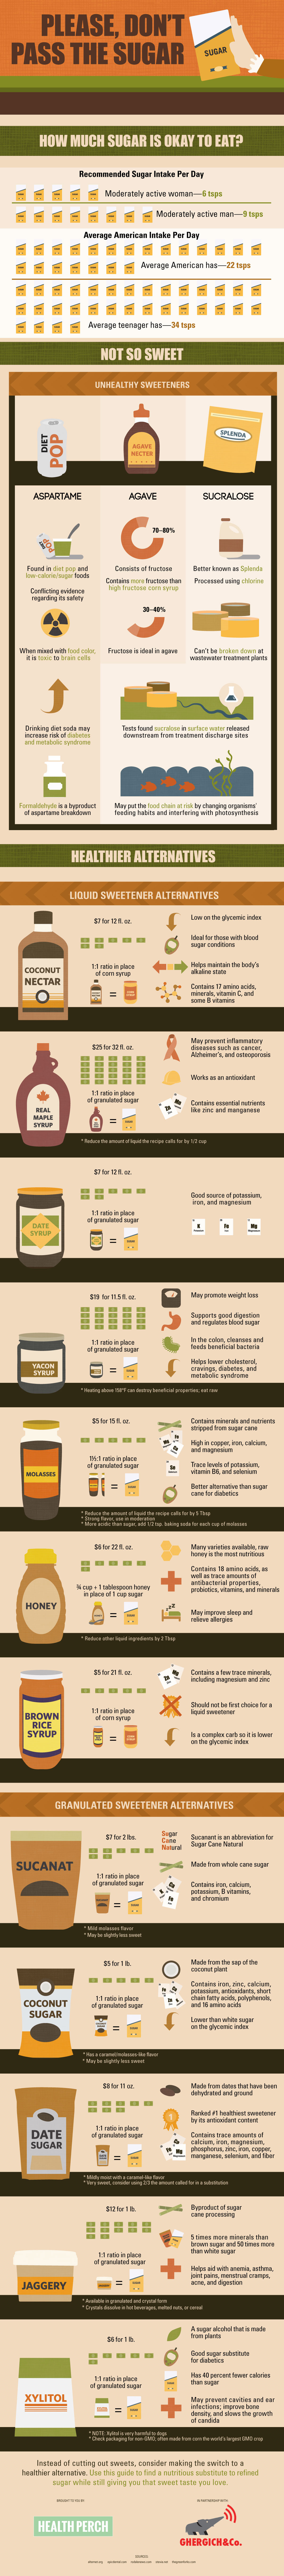 Please, Don't Pass The Sugar: The Best Healthy Alternatives Infographic